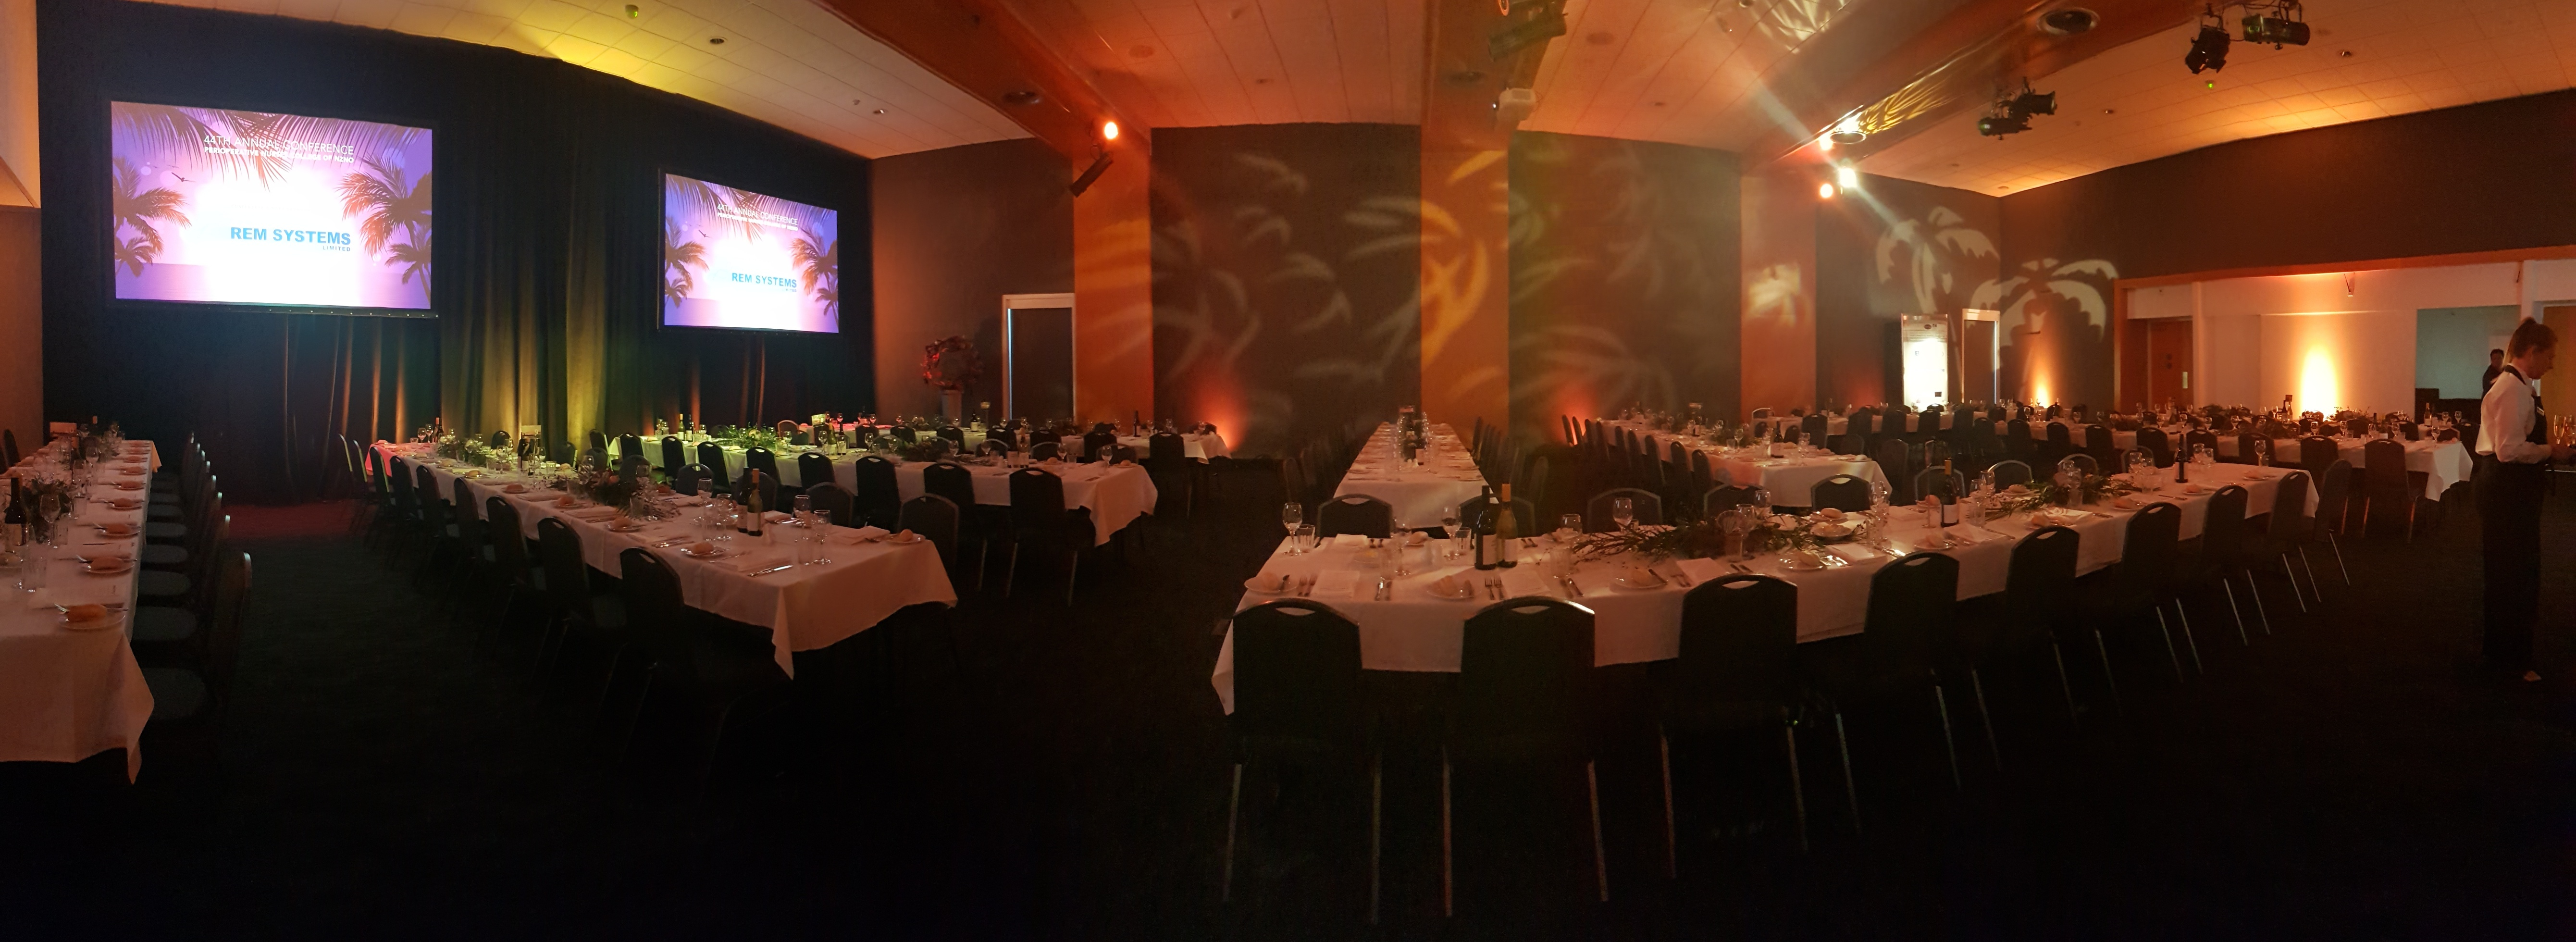 Our large exhibition hall is a versatile space for presentations, trade and also gala dinners